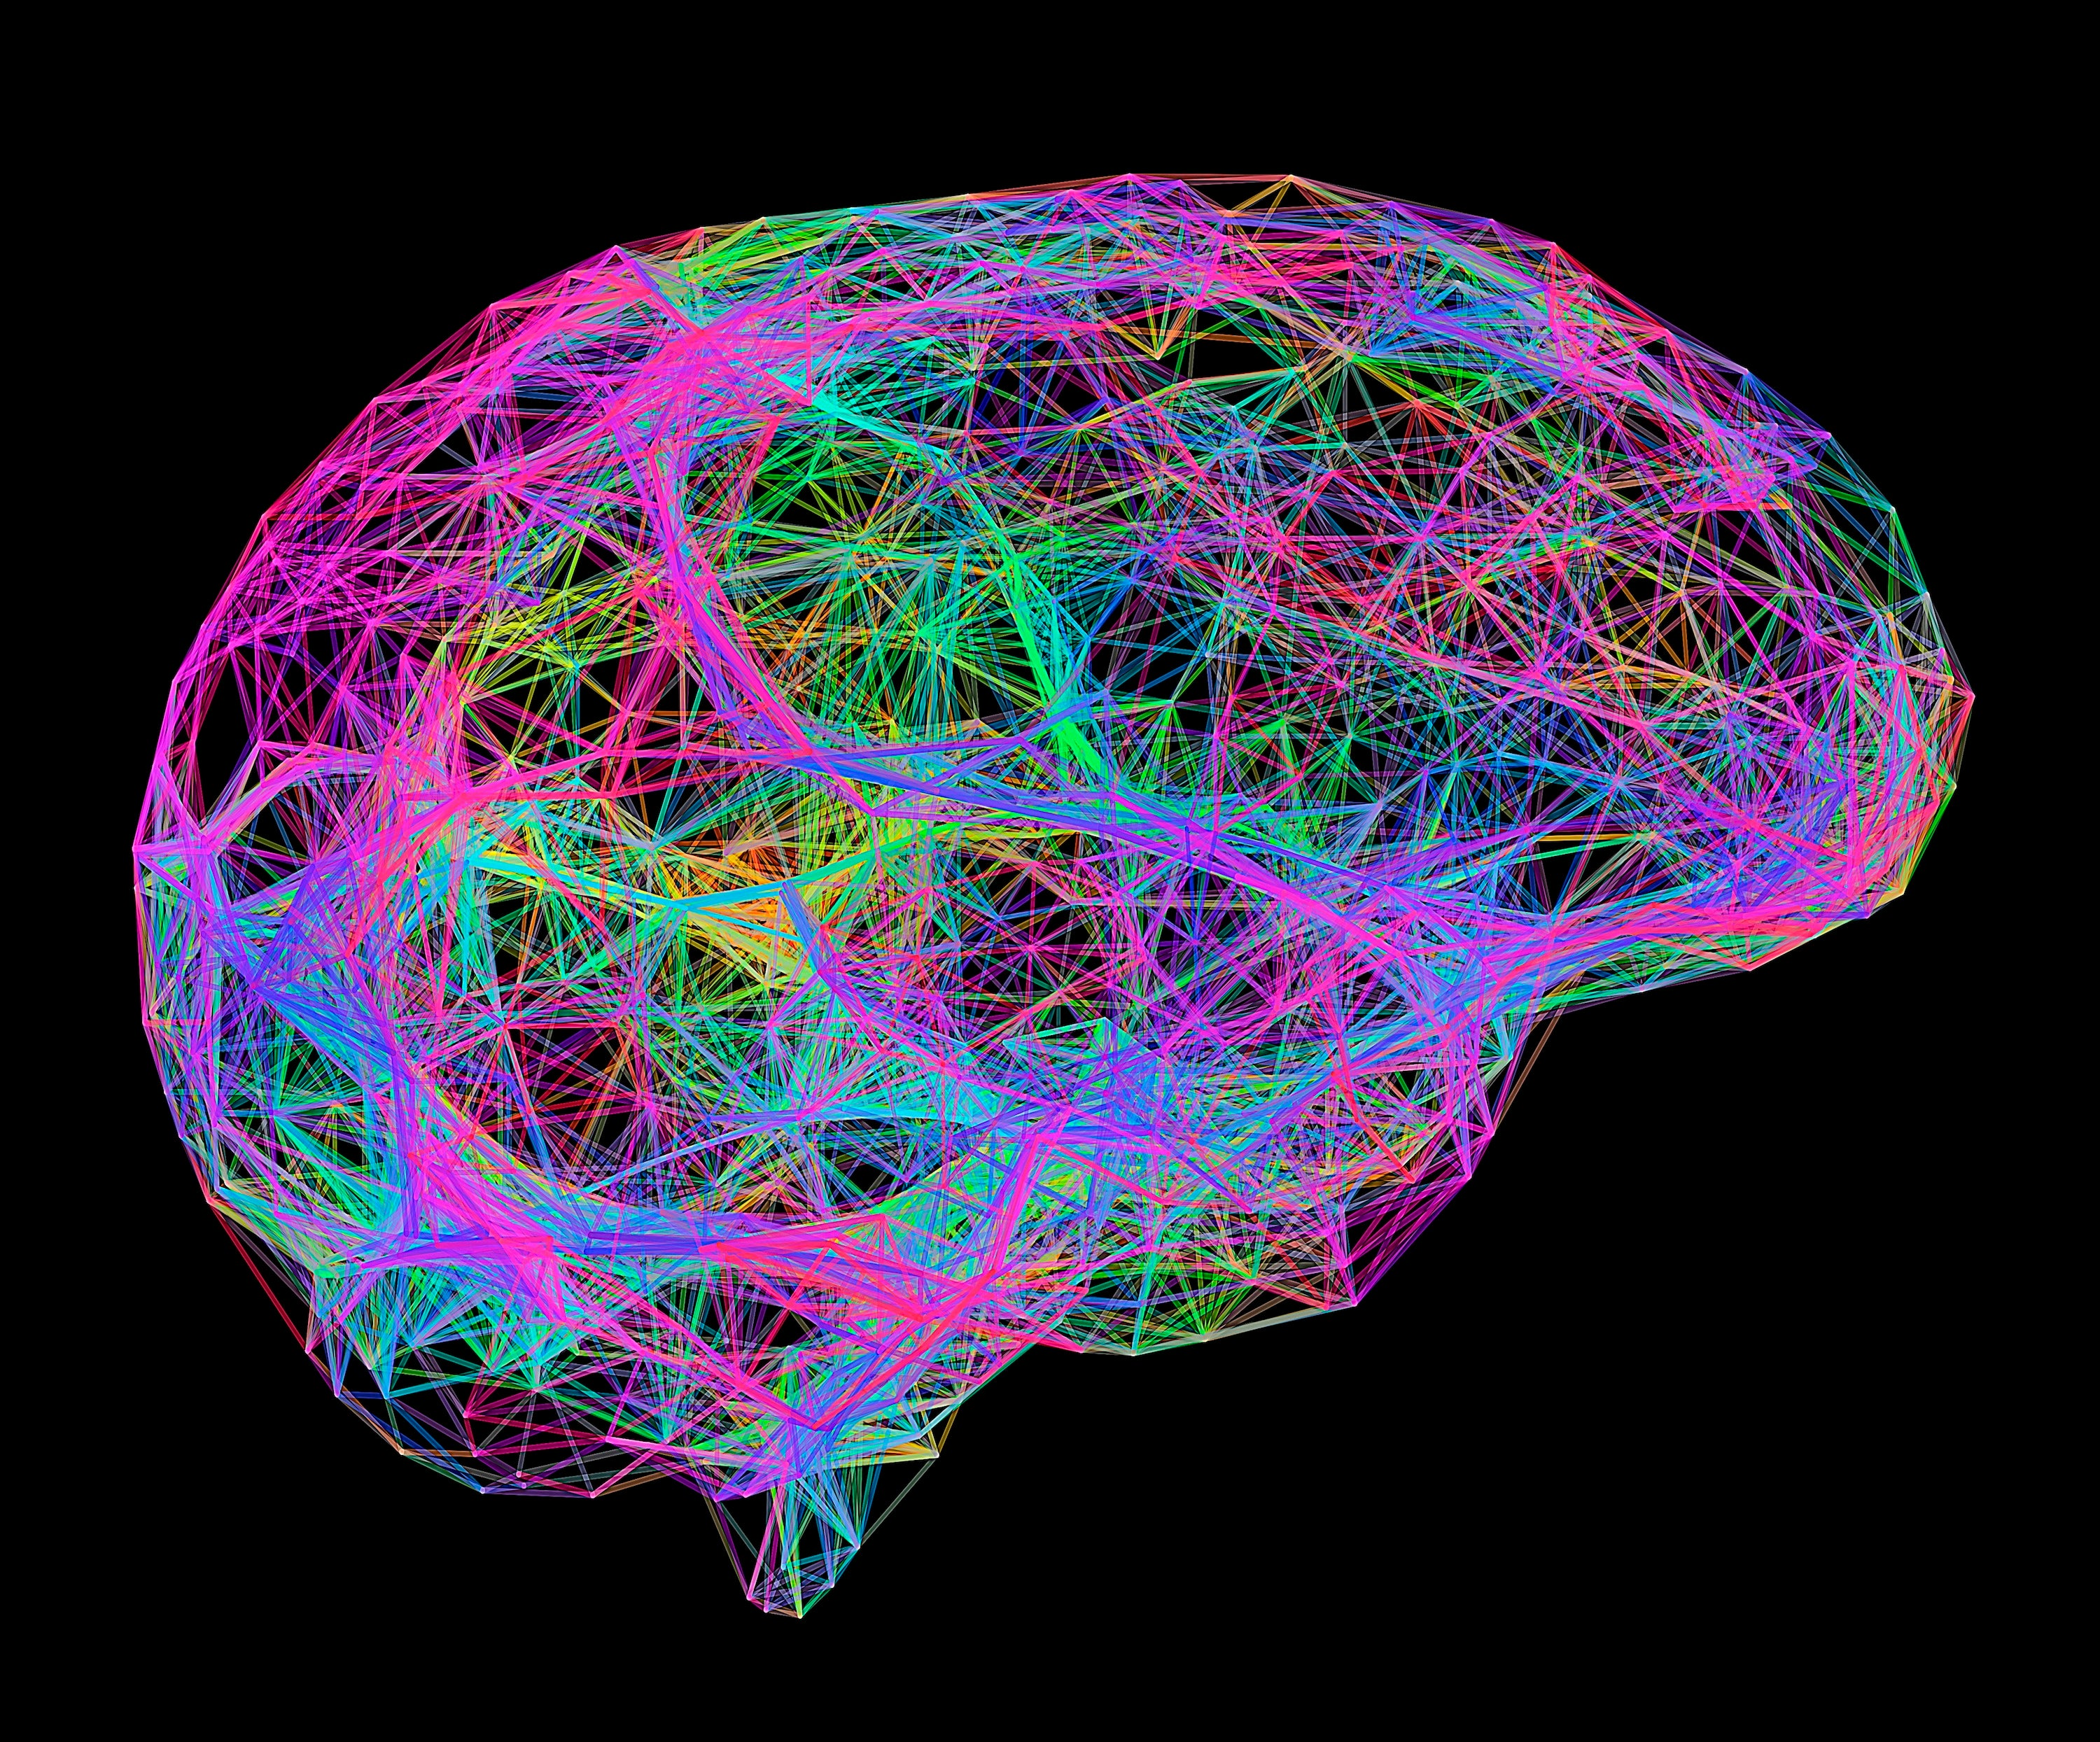 Mind Reading and Mind Control Technologies Are Coming